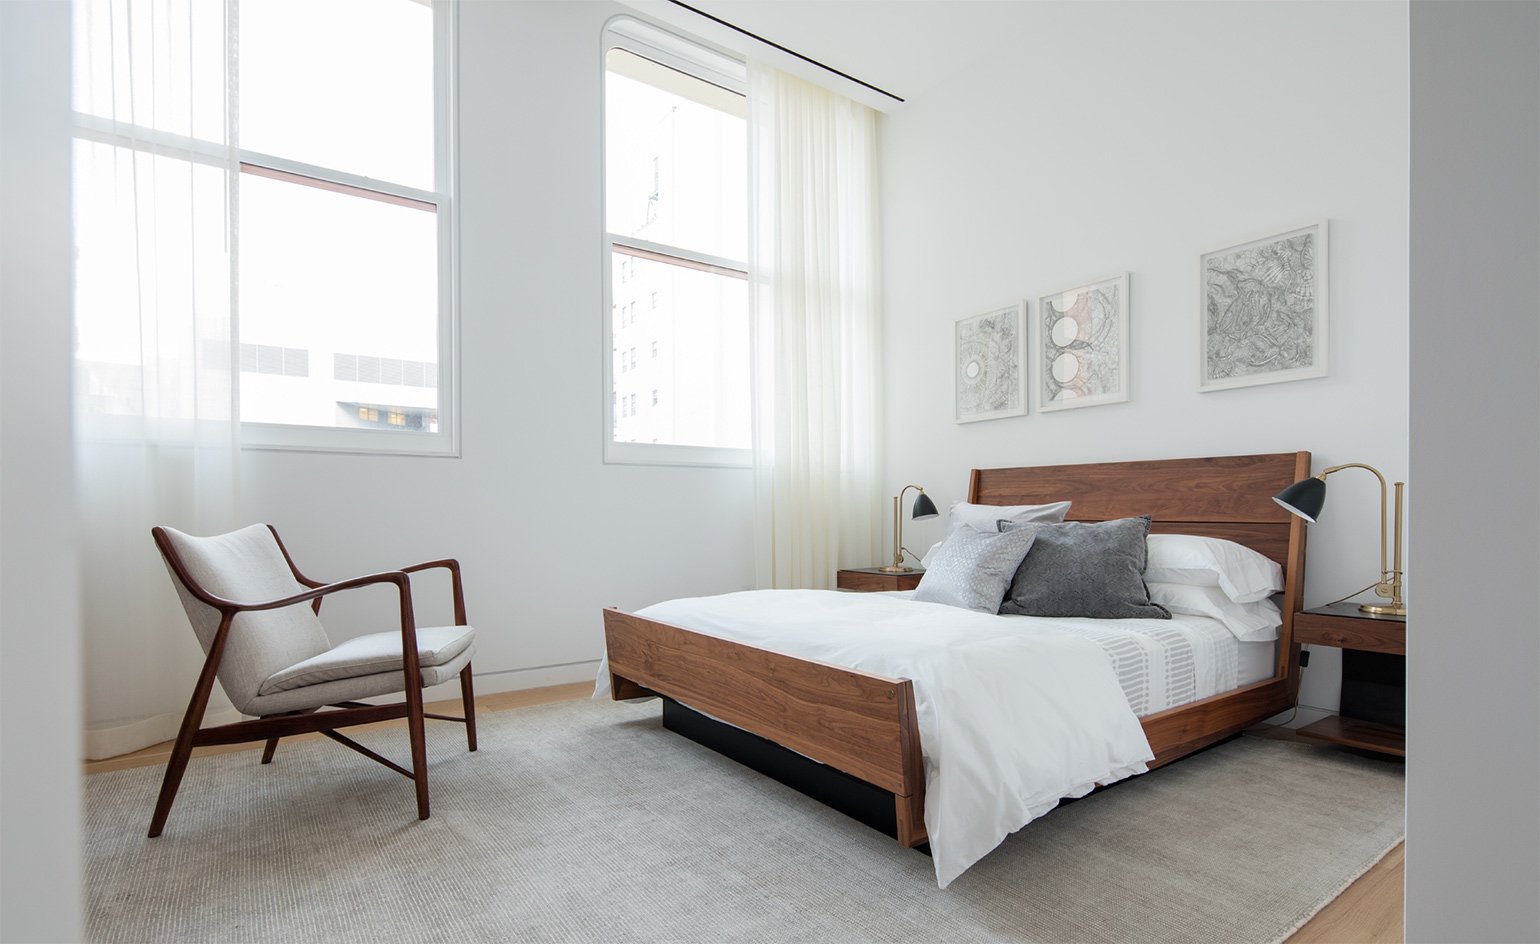 Beautiful Pictured here in the second guest room a queen sized bed in walnut and a Finn Juhl Frame Chair